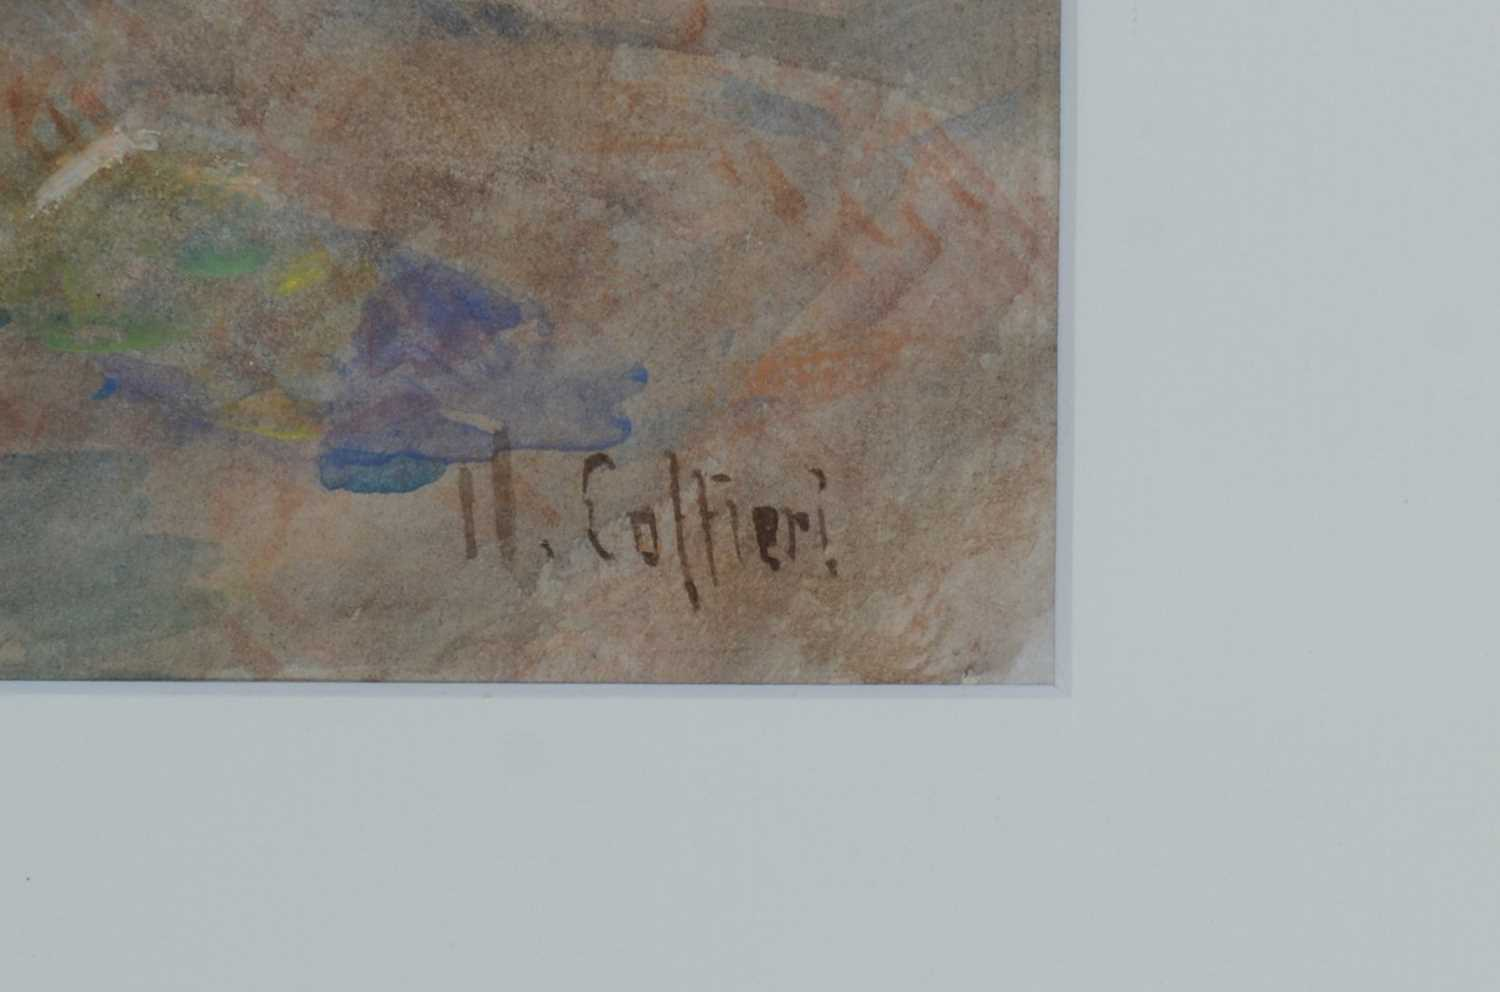 Hector Caffieri - watercolour. - Image 5 of 5